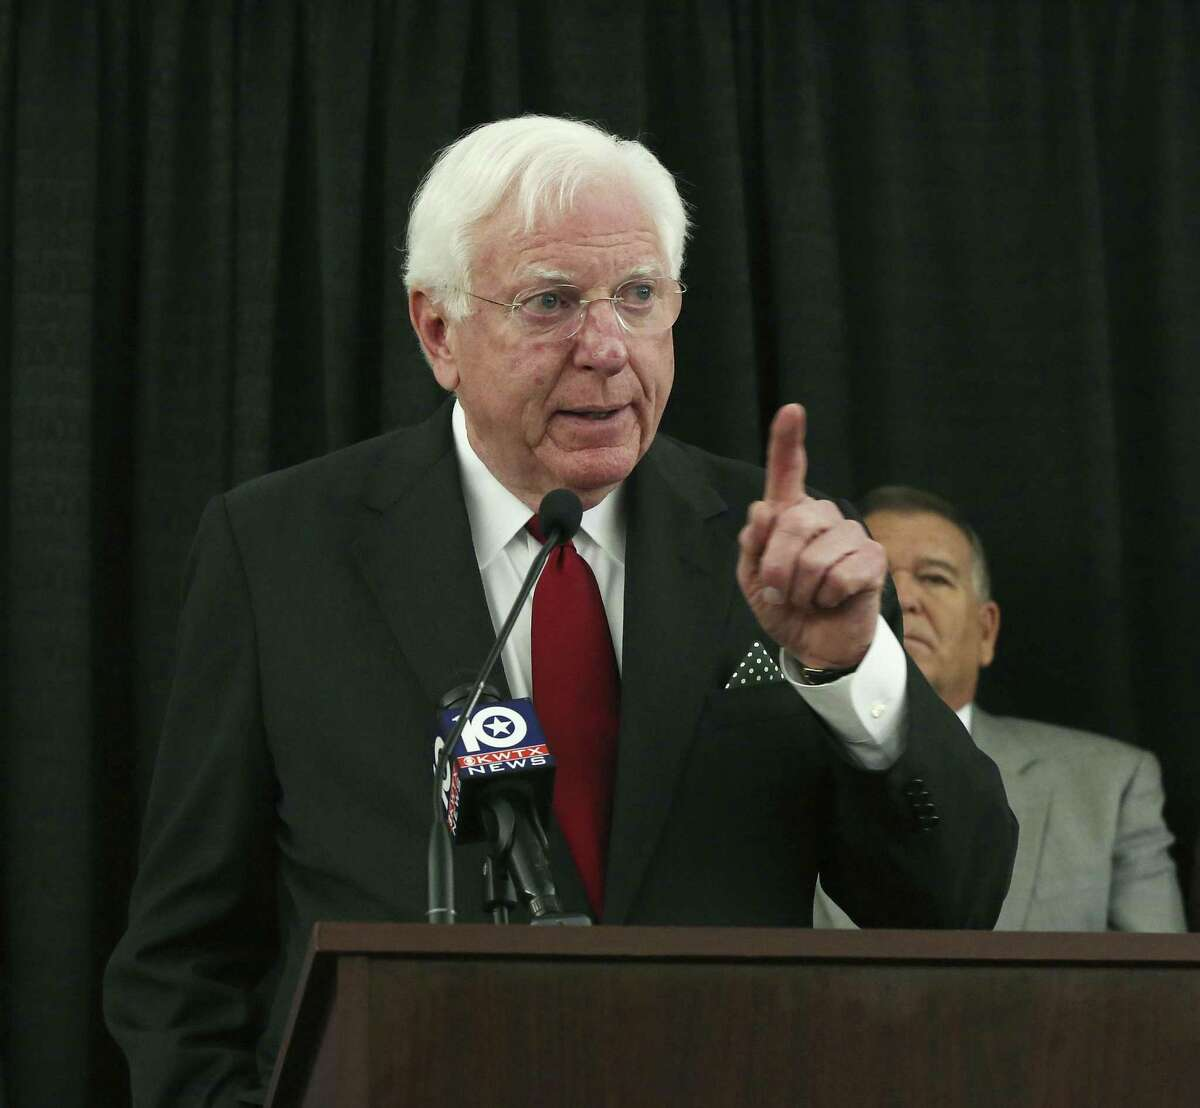 When oil was going bust, Gov. Mark White helped diversify the Texas economy. And he made education a priority.